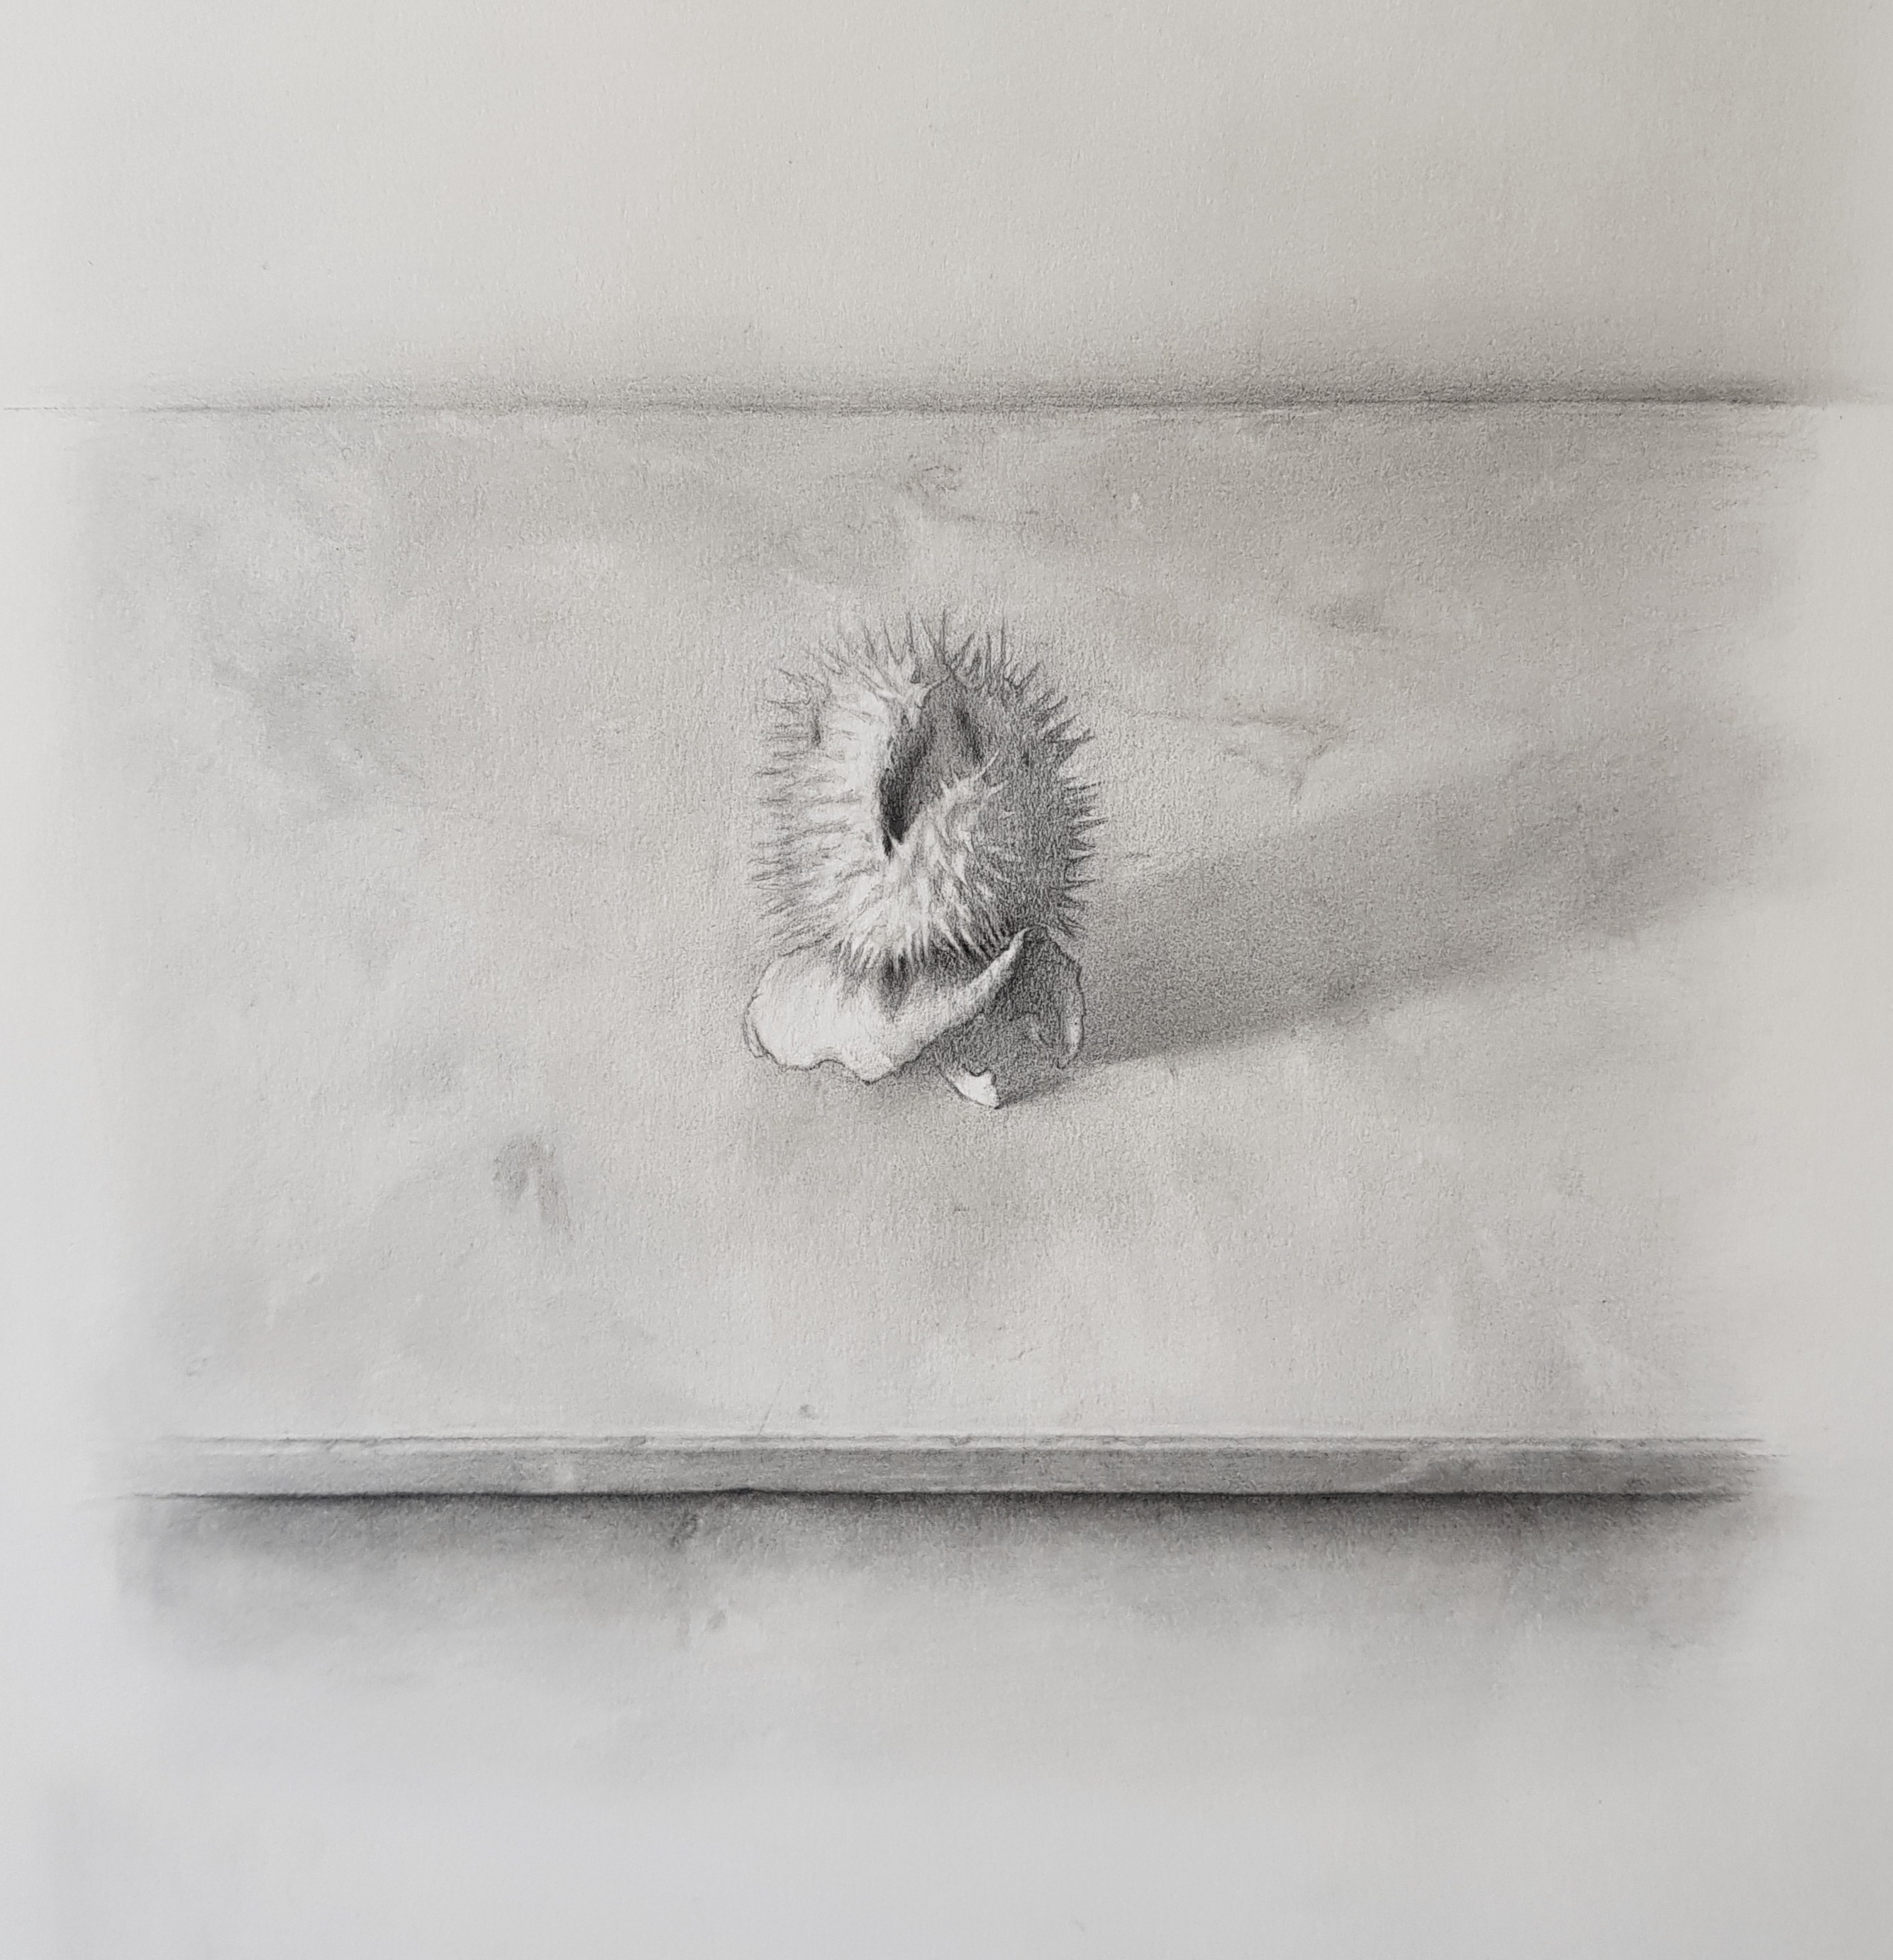 Datura, pencil on paper, 2020